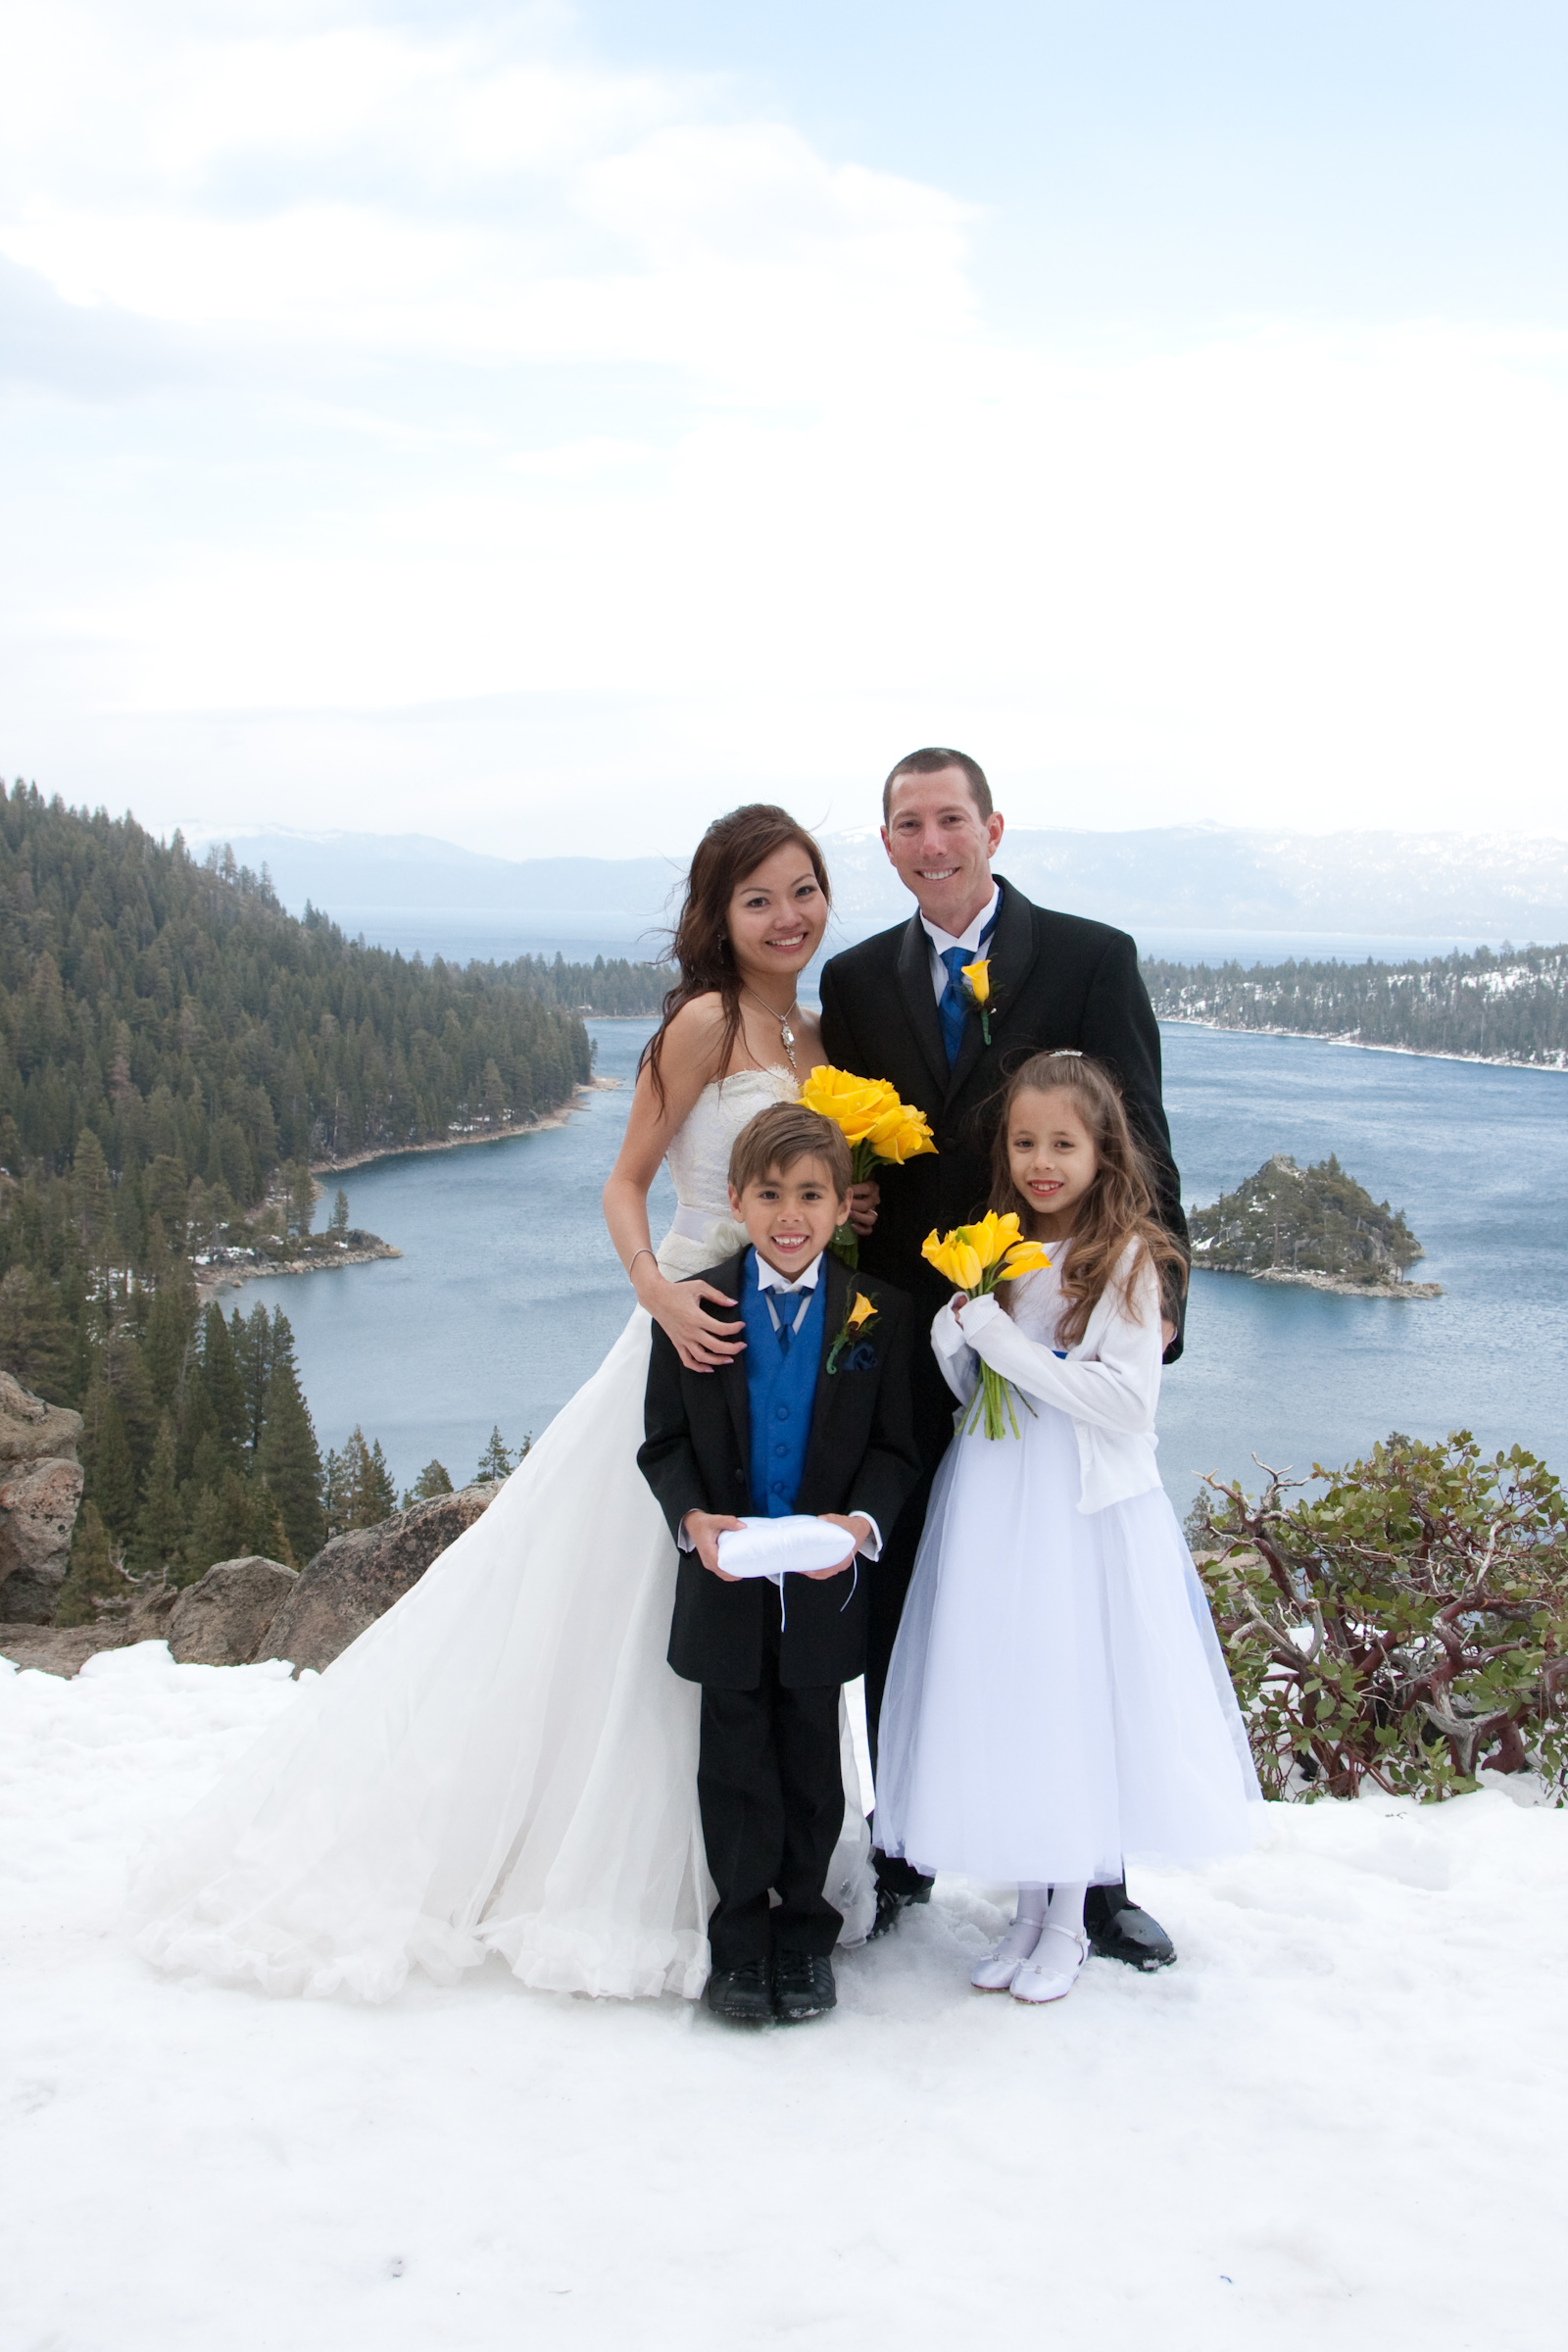 Celeste and Jeff with their ring bearers in Lake Tahoe wedding